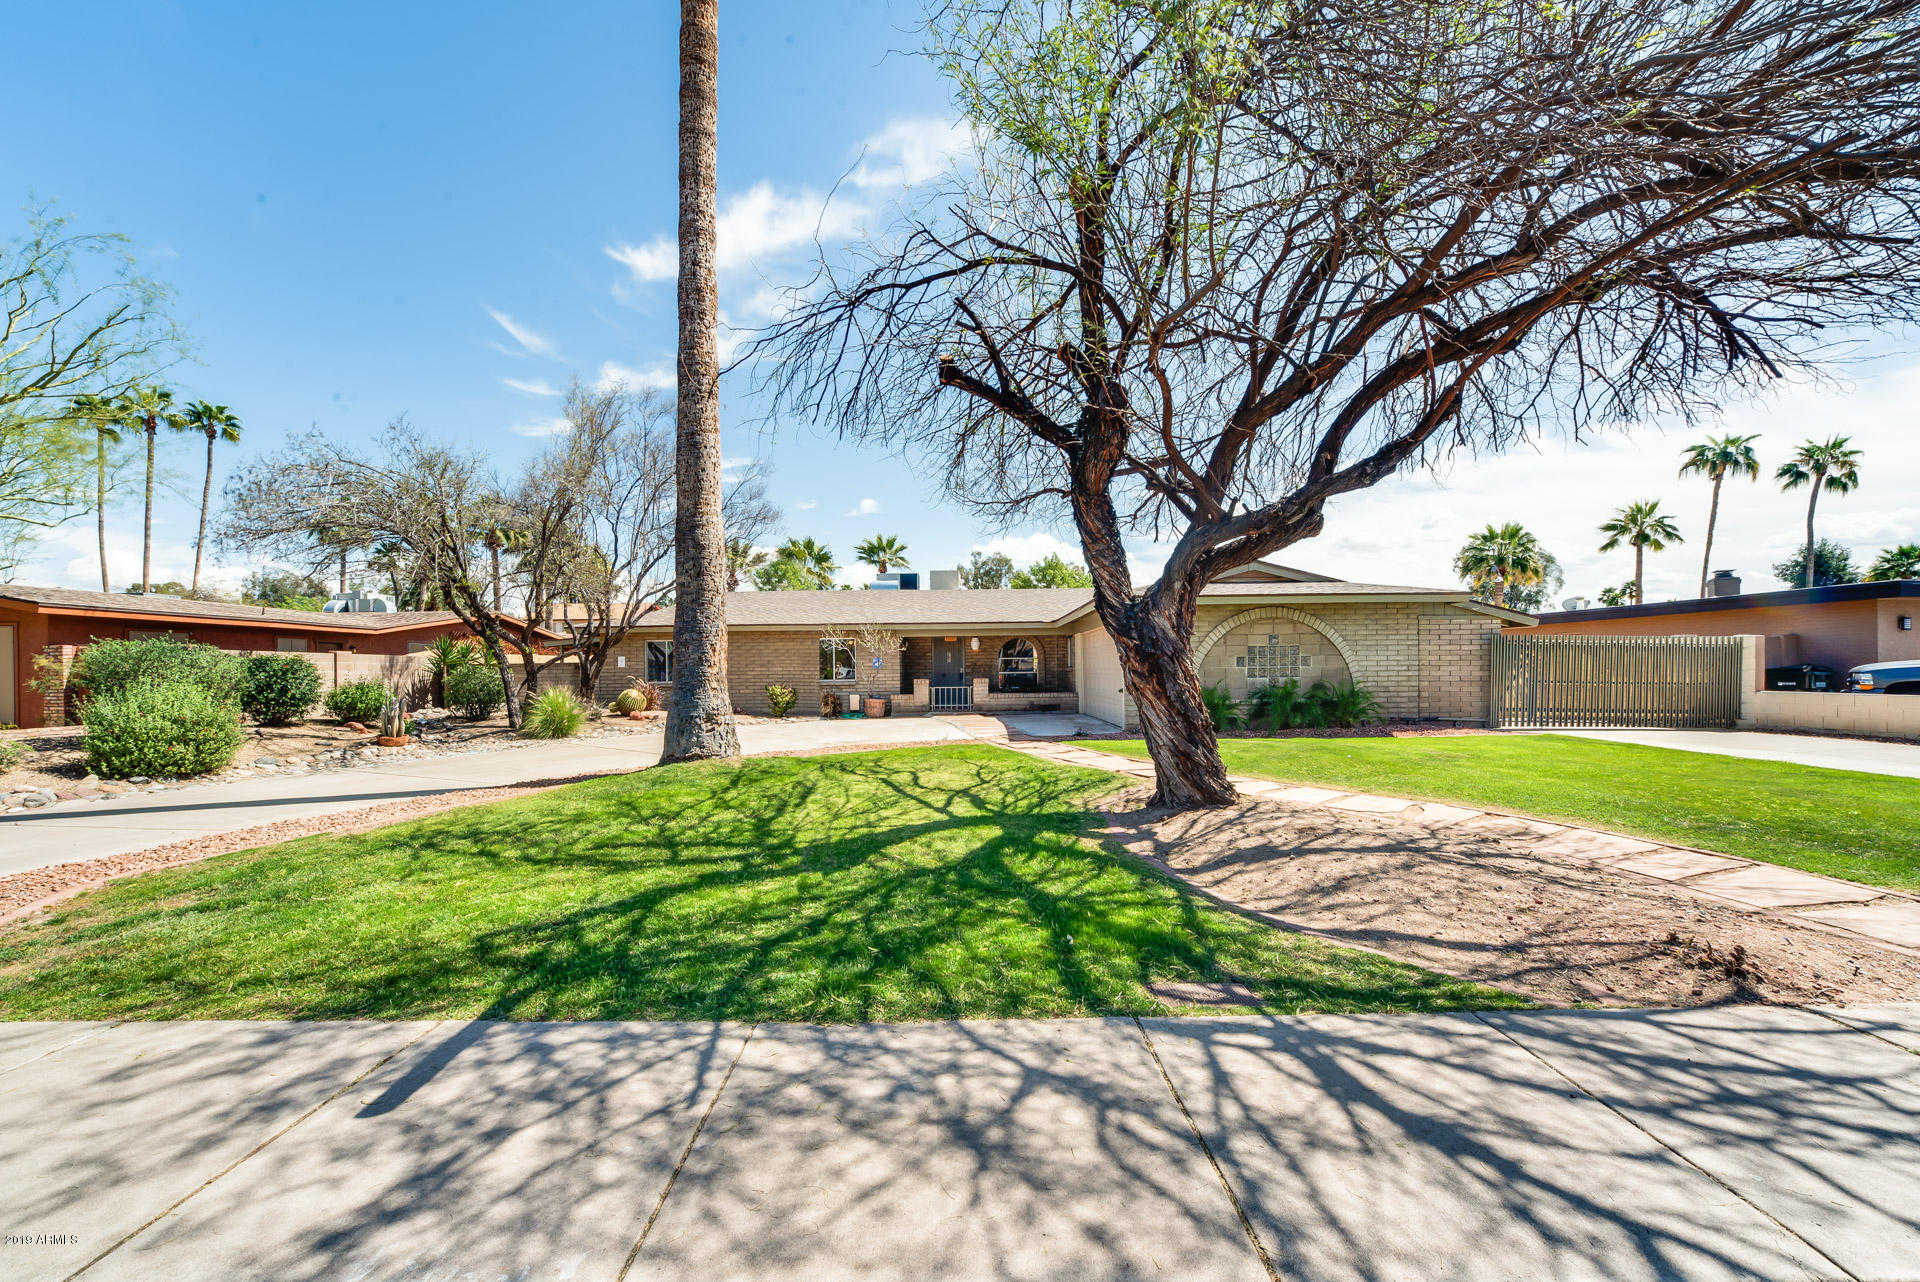 $400,000 - 3Br/3Ba - Home for Sale in Country Club North 2, Phoenix